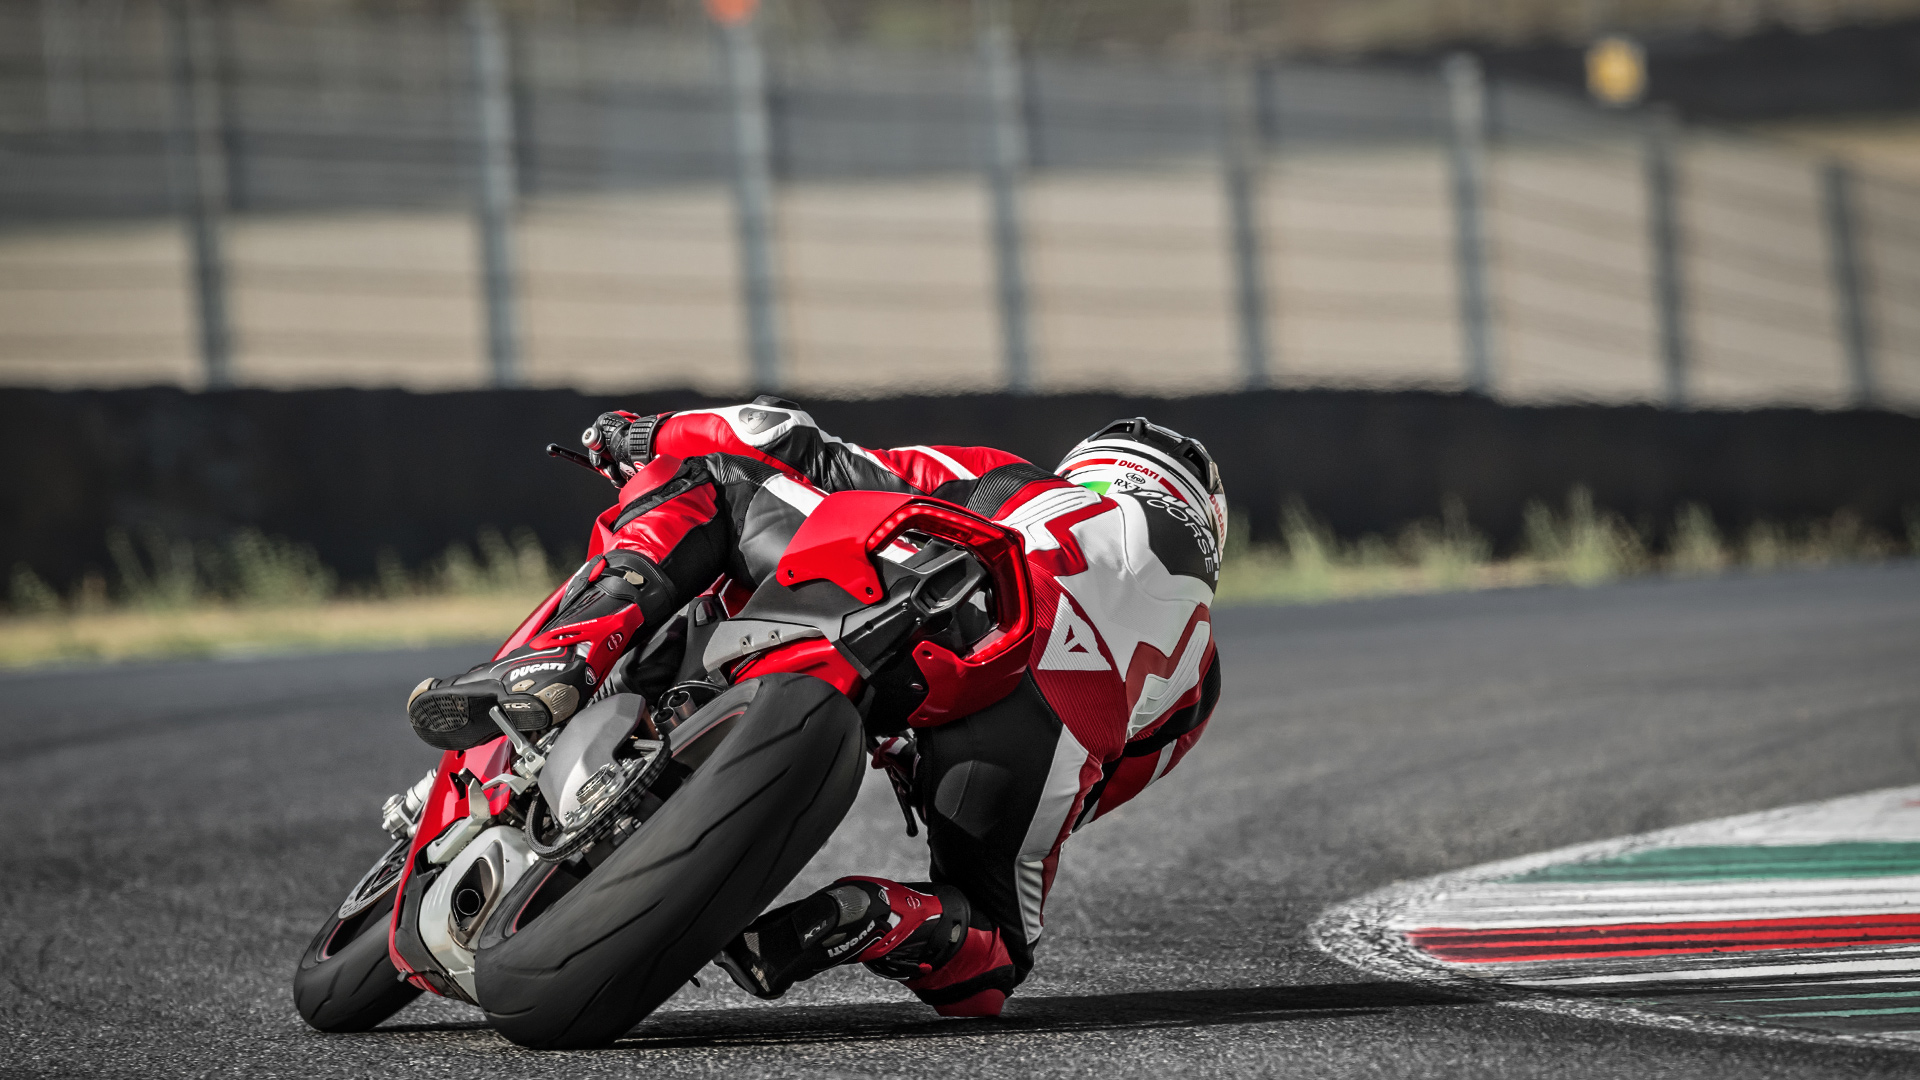 New Ducati Panigale V4 finally hits European showrooms!